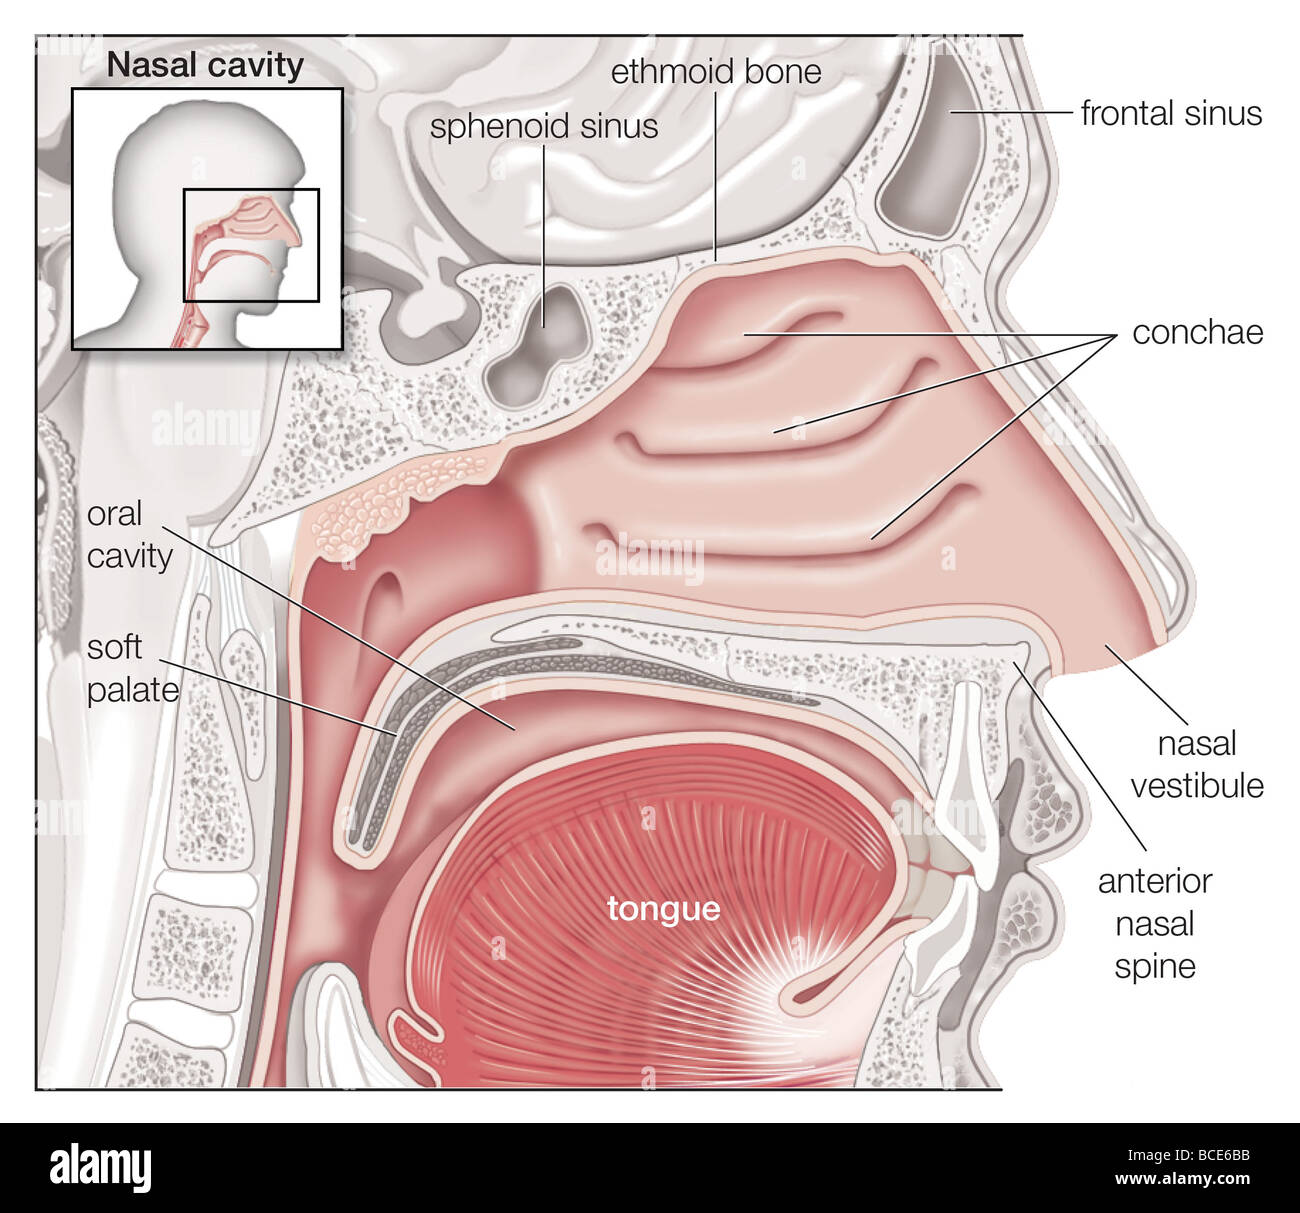 Sagittal View Of The Human Nasal Cavity Stock Photo 24898591 Alamy